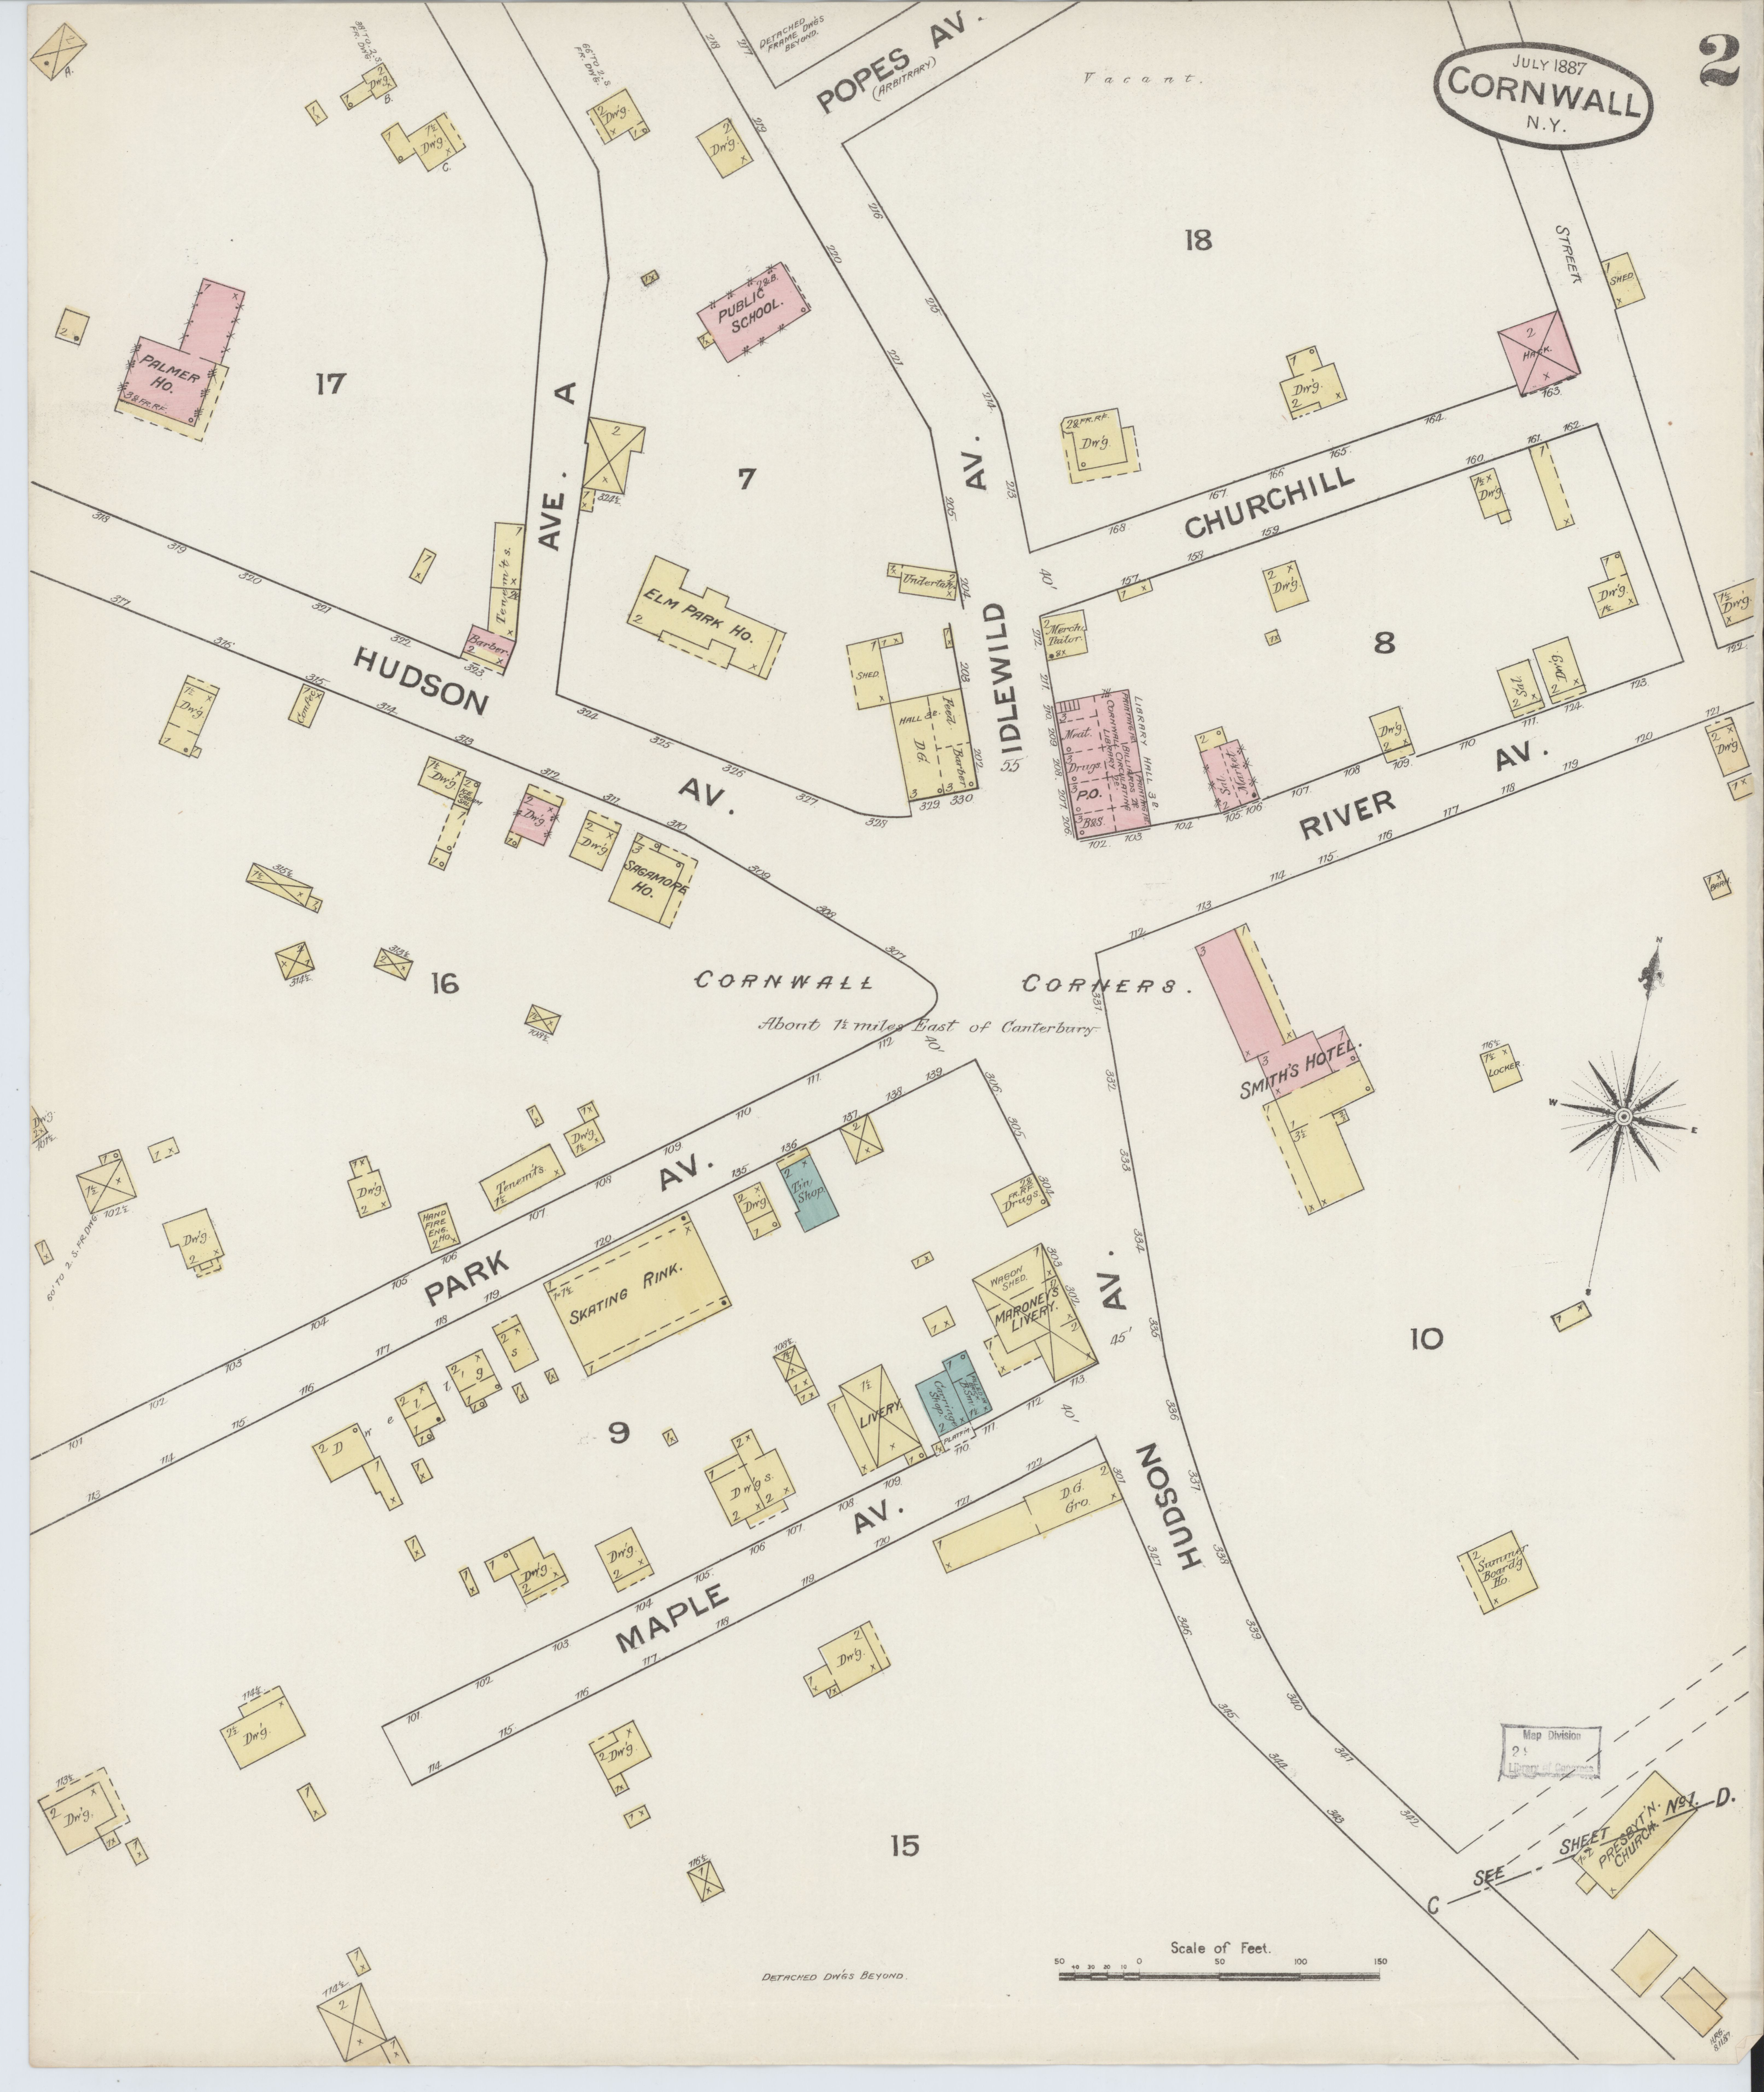 County Line 2 Fire Map.File Sanborn Fire Insurance Map From Cornwall Orange County New